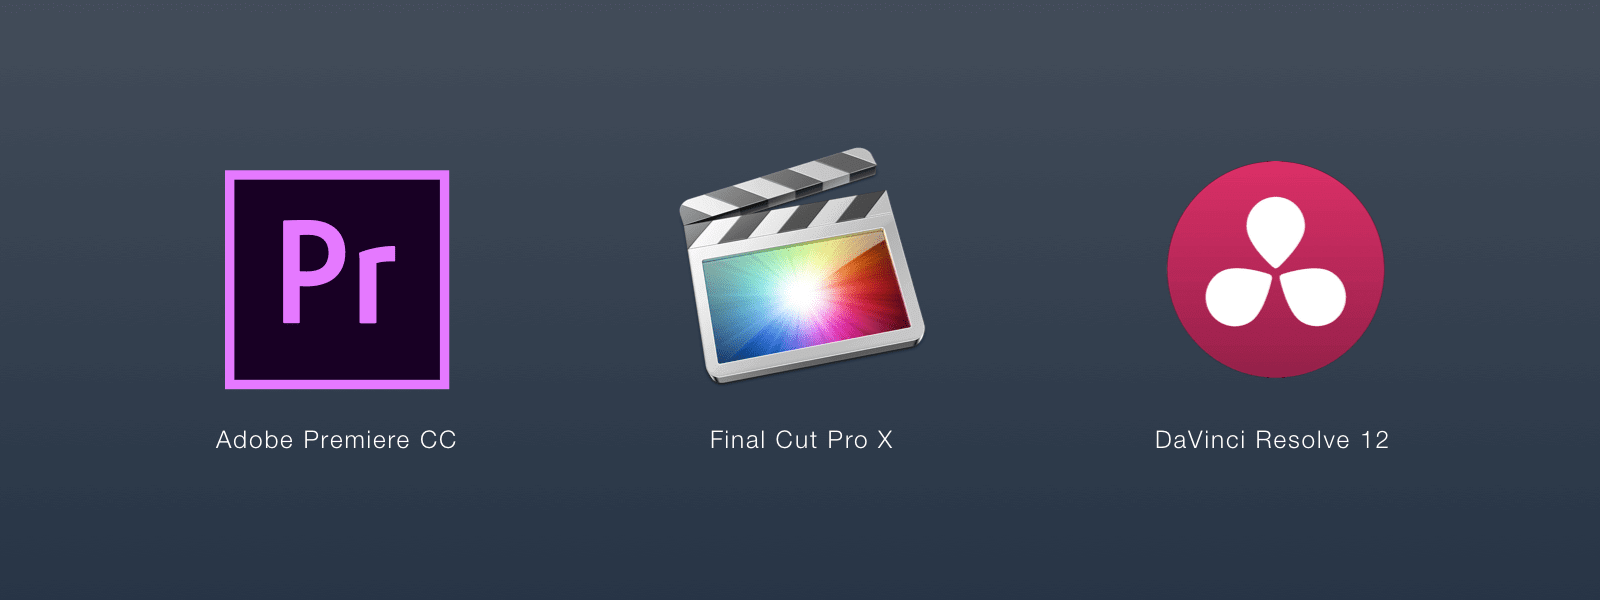 Best Filmmaker Software and Tools - Adobe Premiere CC - Final Cut X - DaVinci Resolve